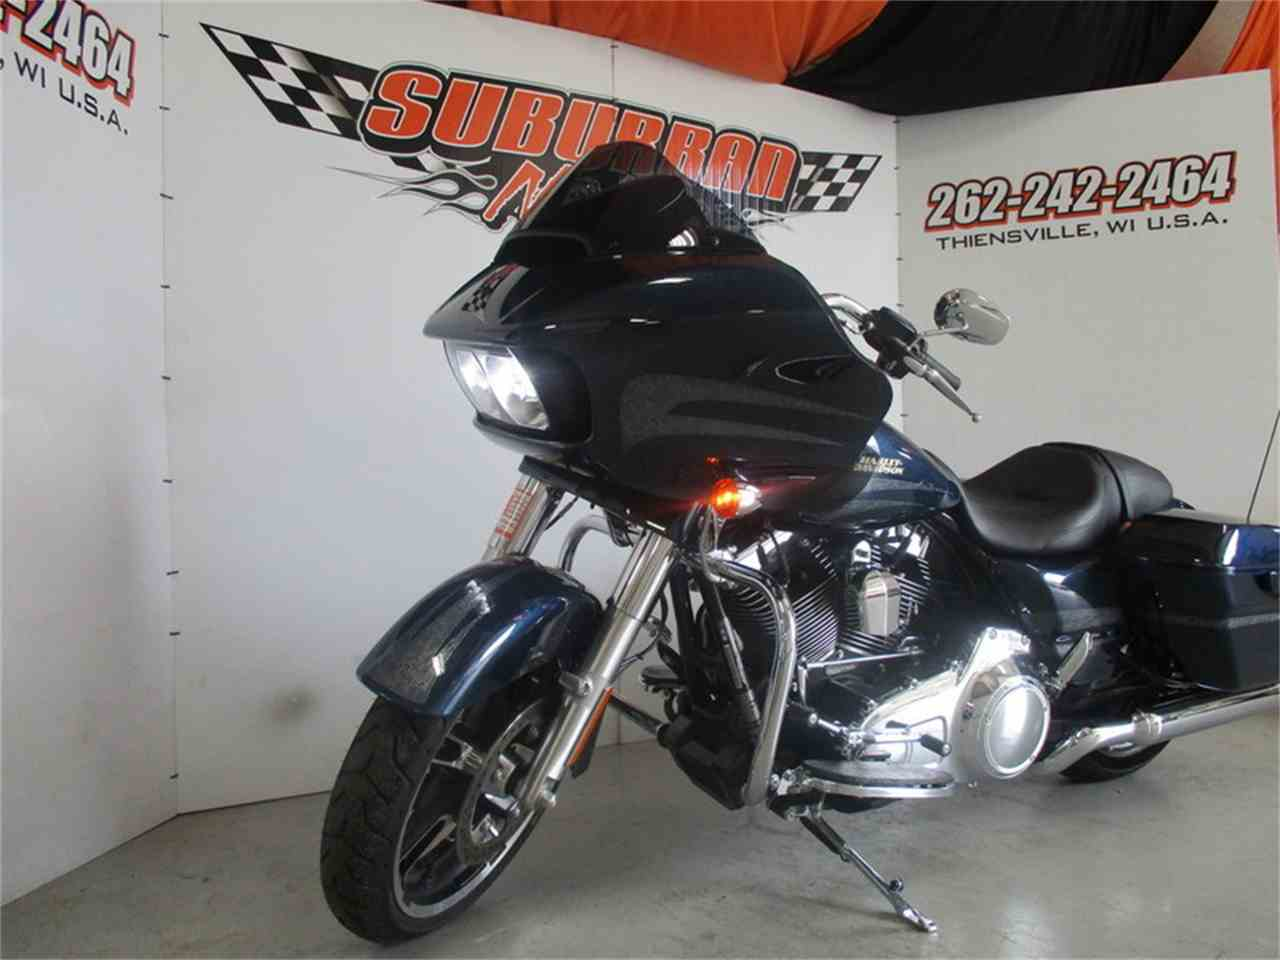 Large Picture of 2016 Harley-Davidson® FLTRXS - Road Glide® Special - $19,212.00 Offered by Suburban Motors, Inc. - M9FJ